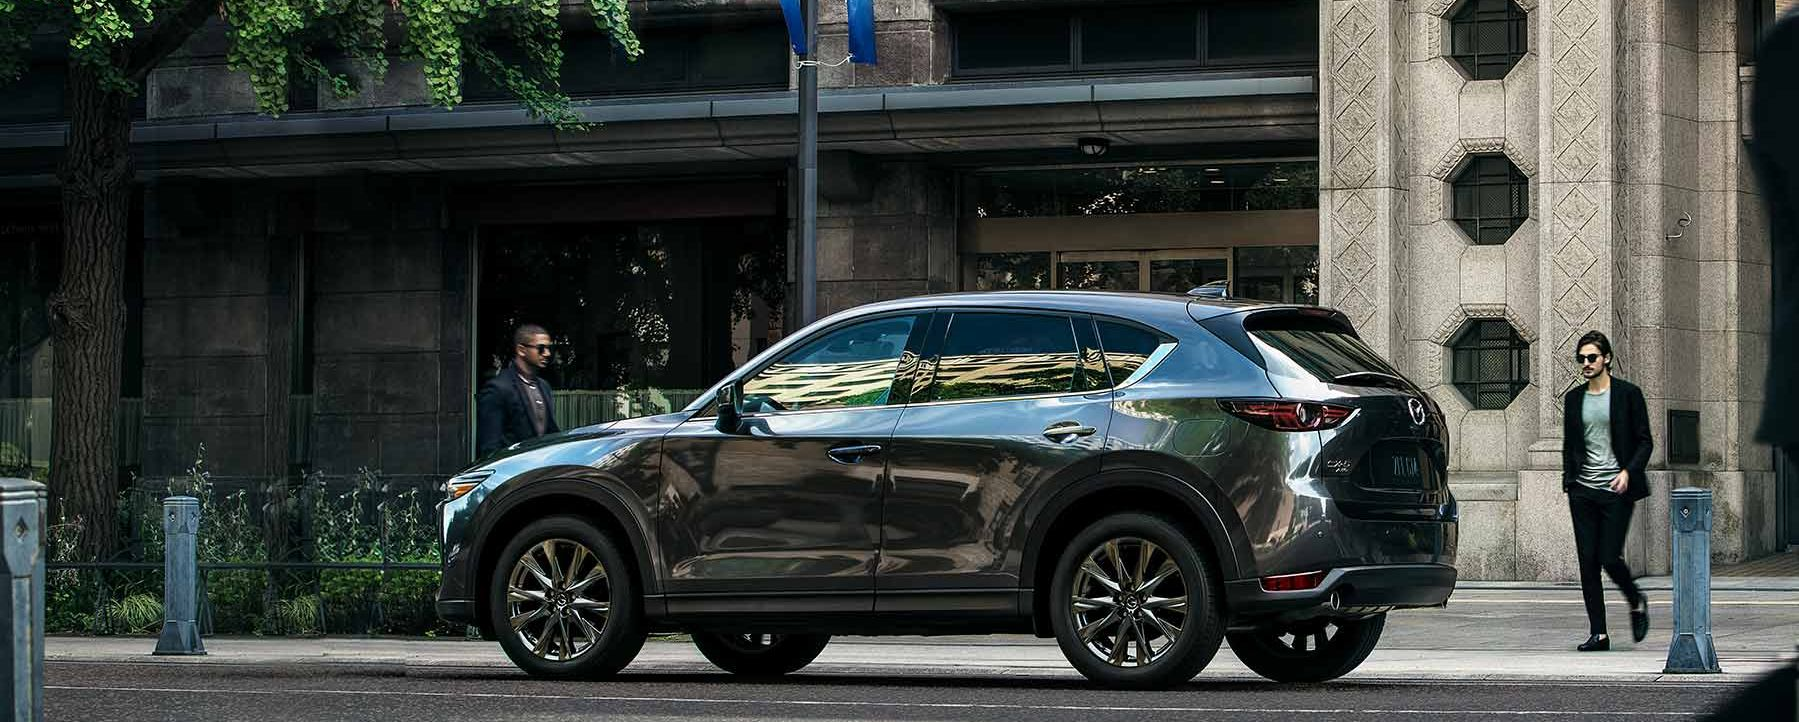 2019 Mazda CX-5 for Sale near Pearland, TX